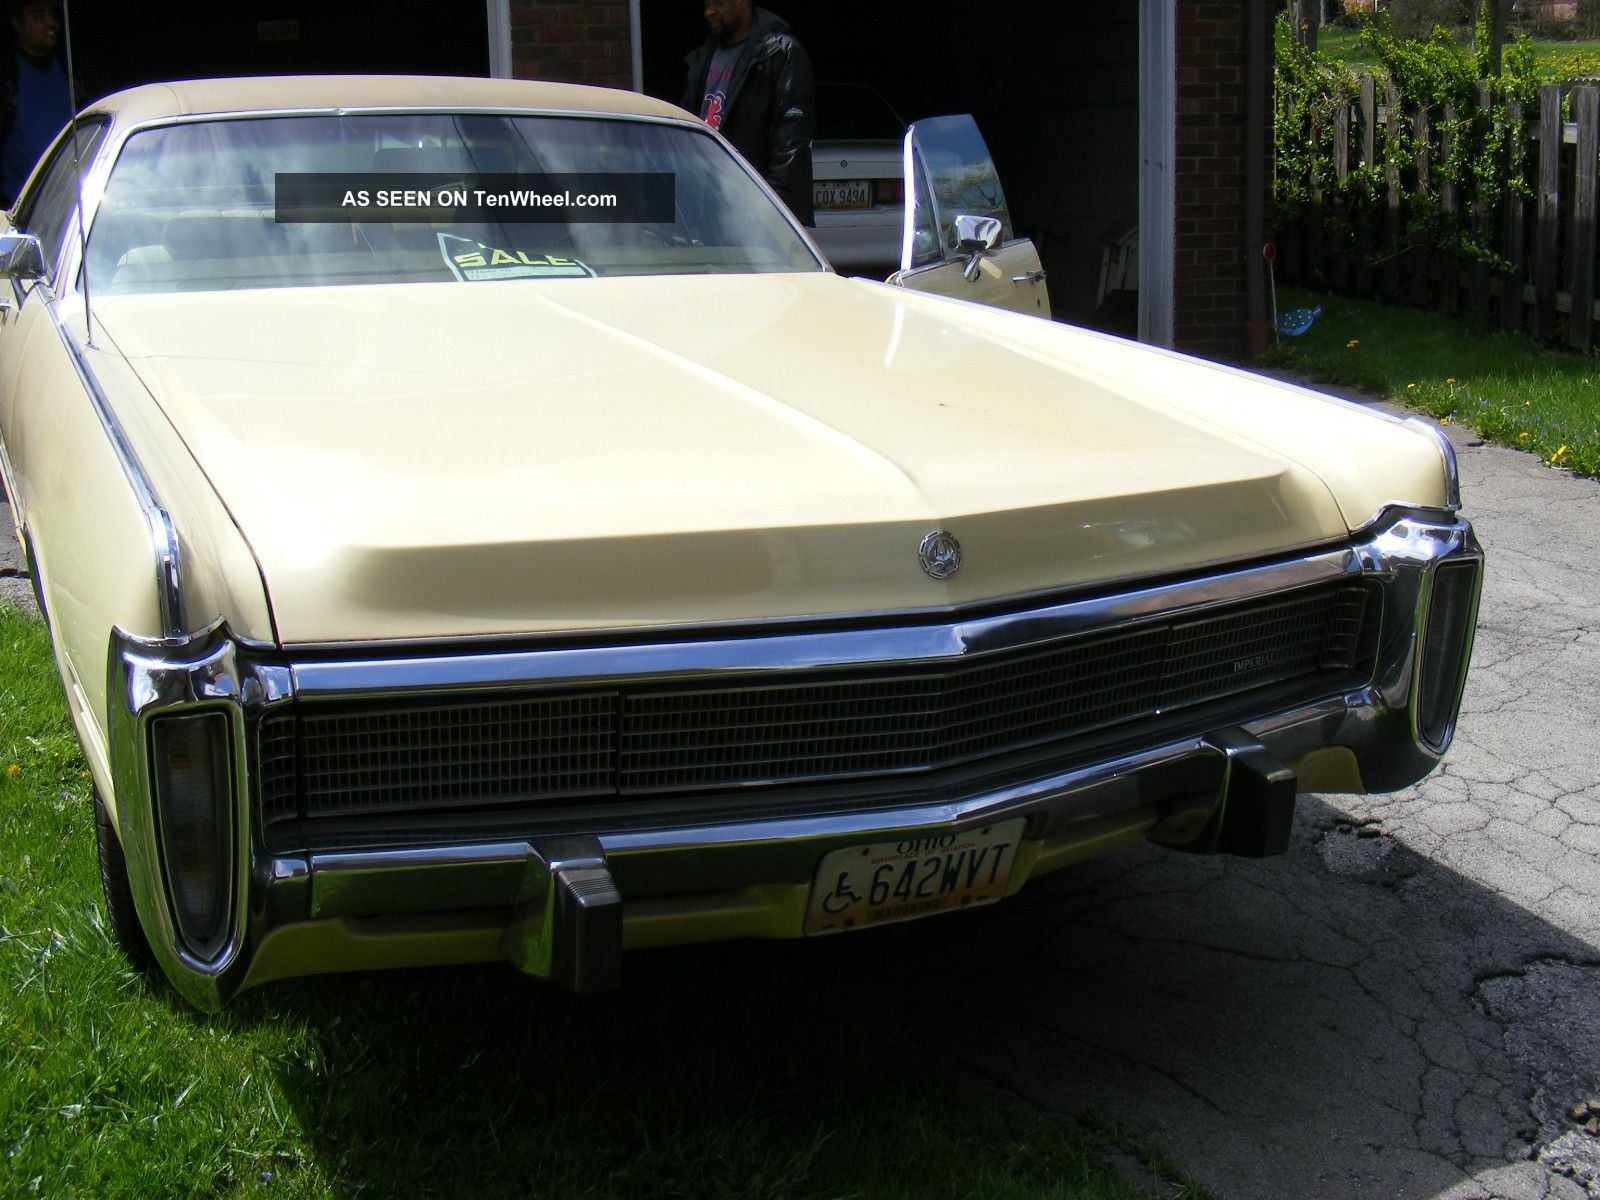 chrysler imperial lebaron html with 23575 1973 Chrysler Imperial Lebaron 7   2l on 144578 1971 Imperial Lebaron 2 Door Hardtop Rare Sunroof Survivor also G12 in addition 171396 1972 Imperial Lebaron 4 Door Hardtop as well Index likewise 23575 1973 chrysler imperial lebaron 7   2l.